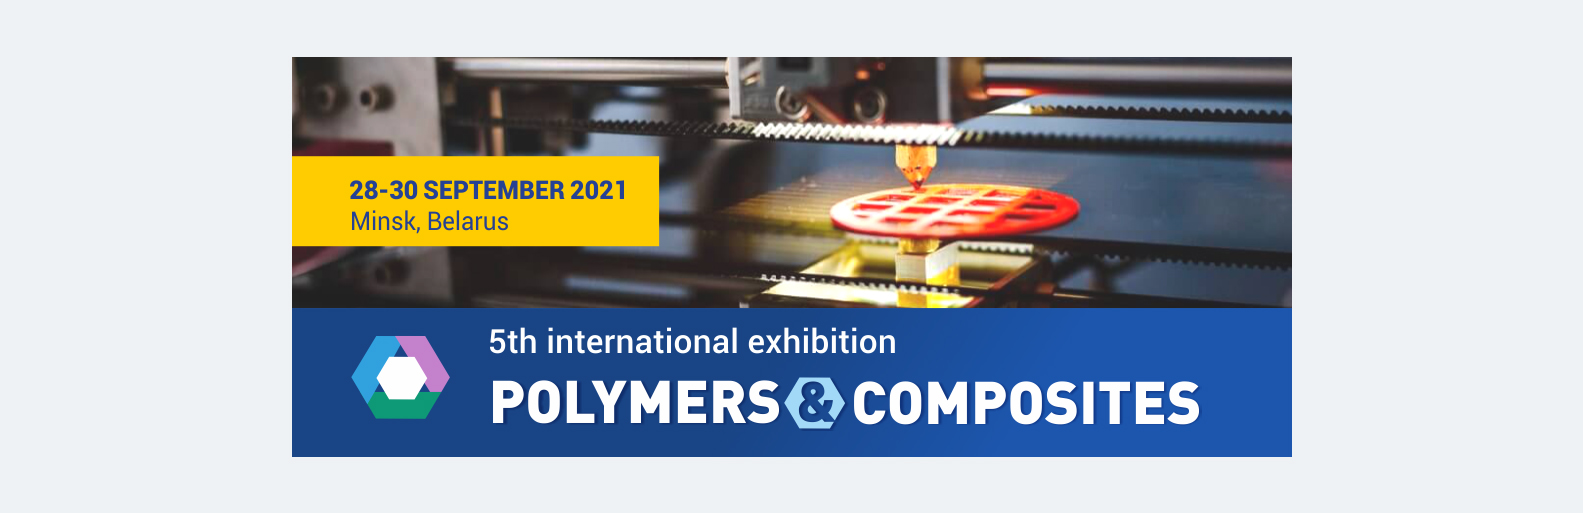 Polymers & Composites Exhibition